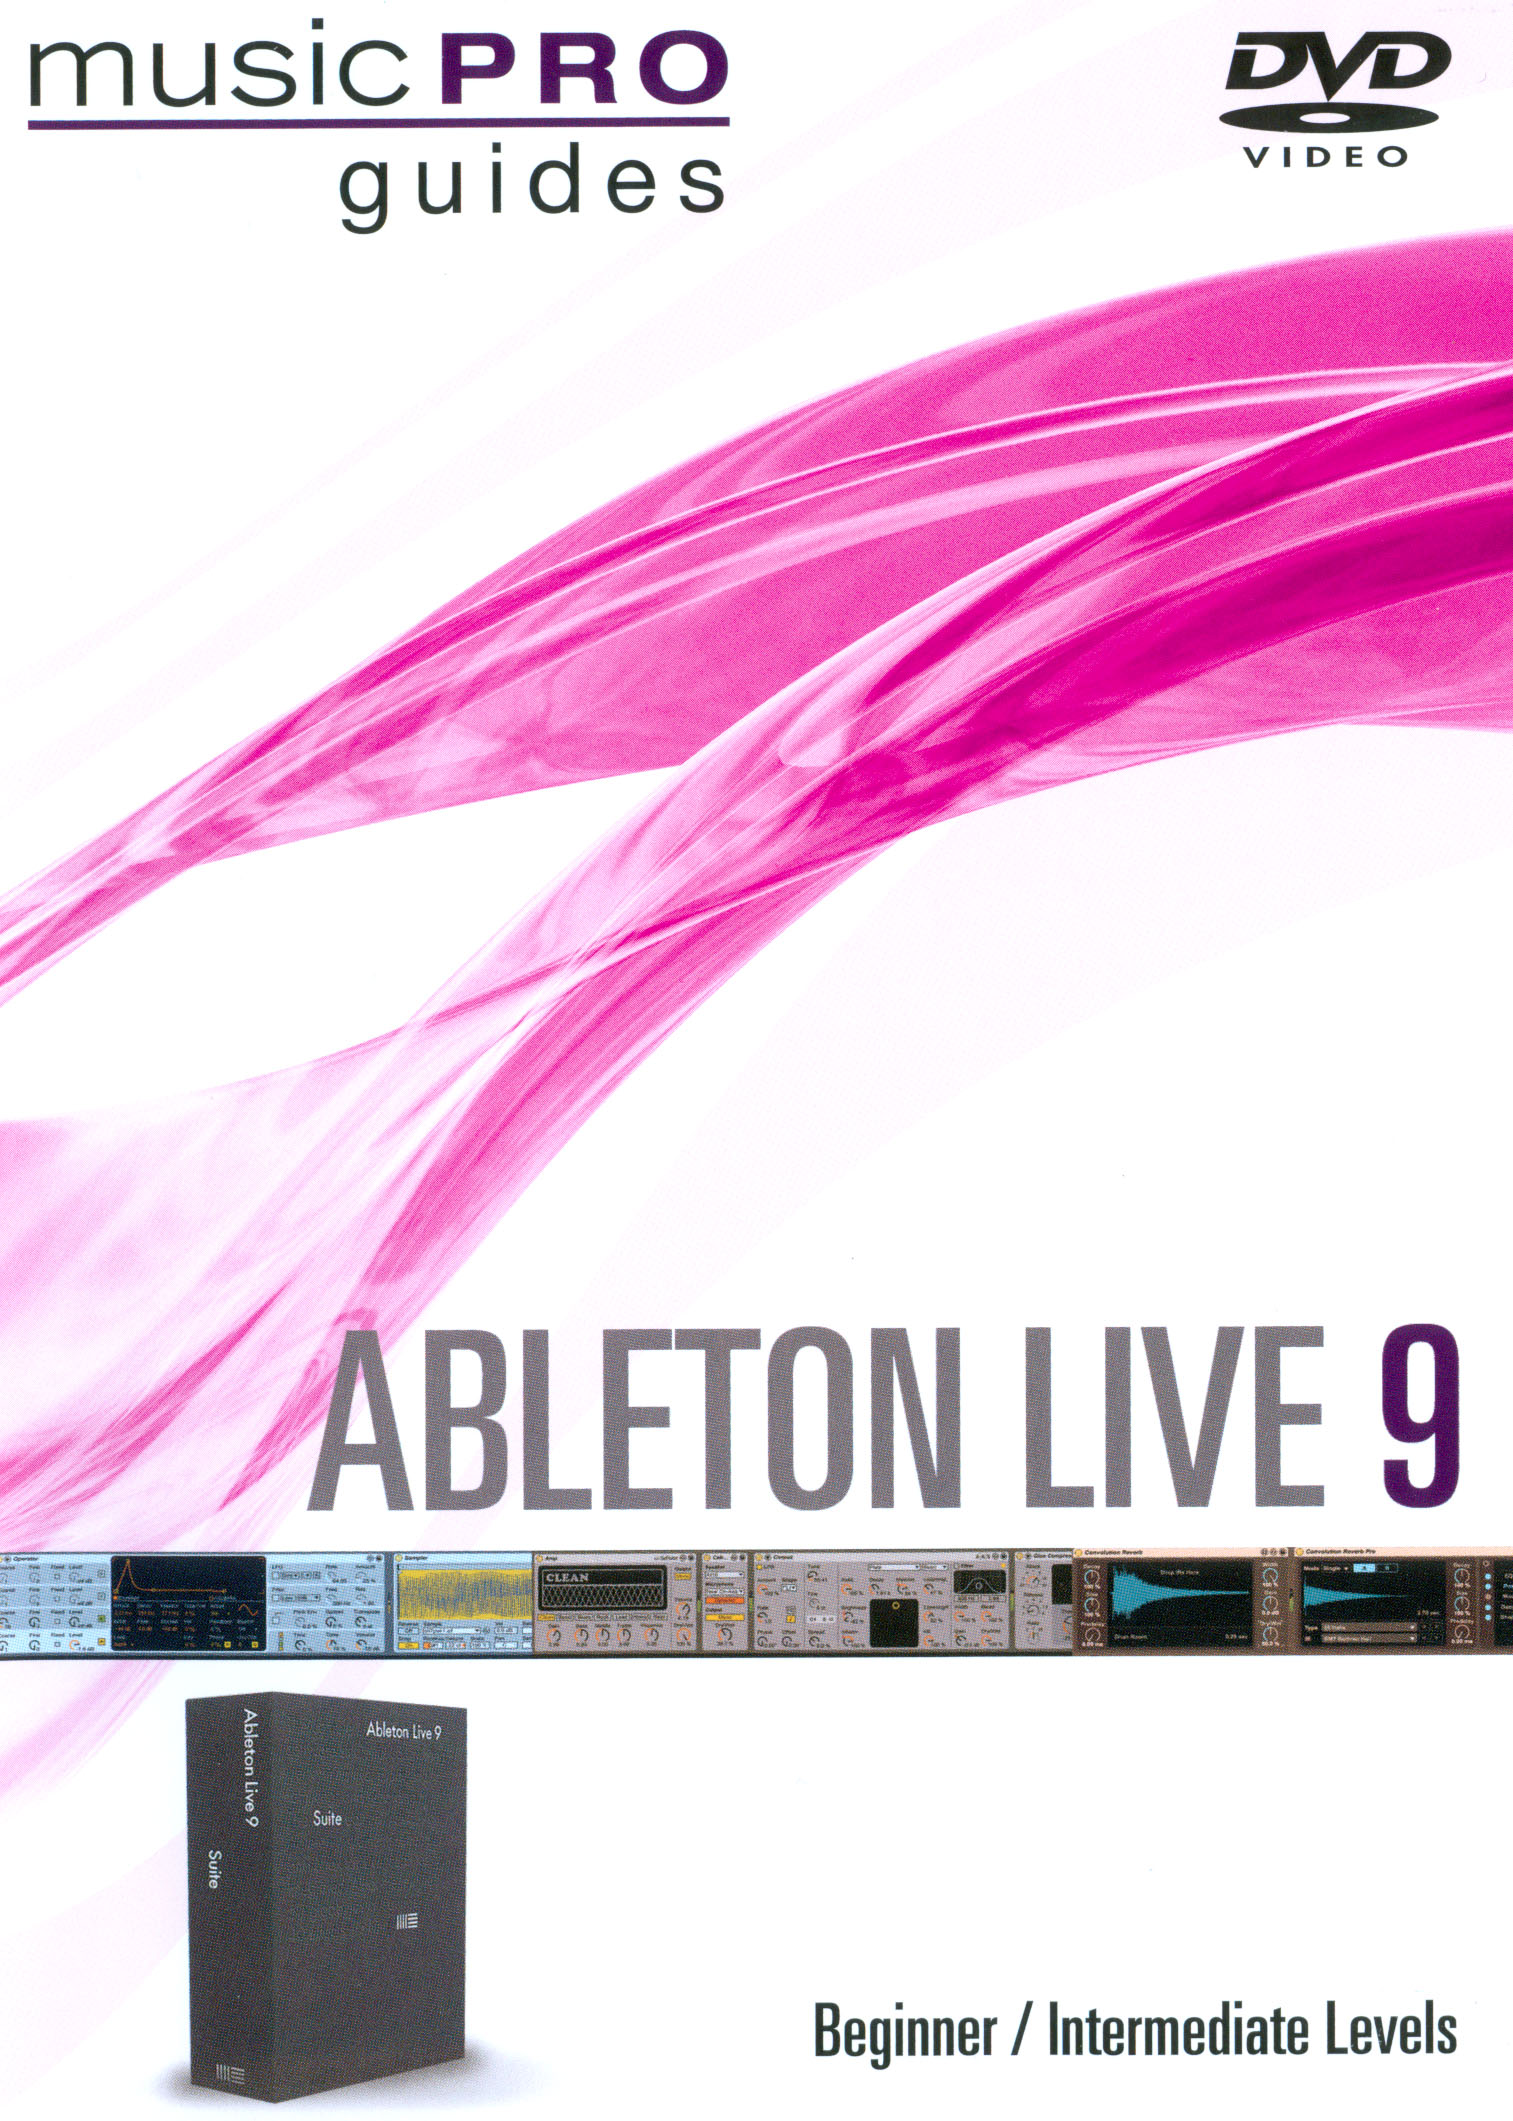 Music Pro Guides: Ableton Live 9 - Beginner/Intermediate Levels